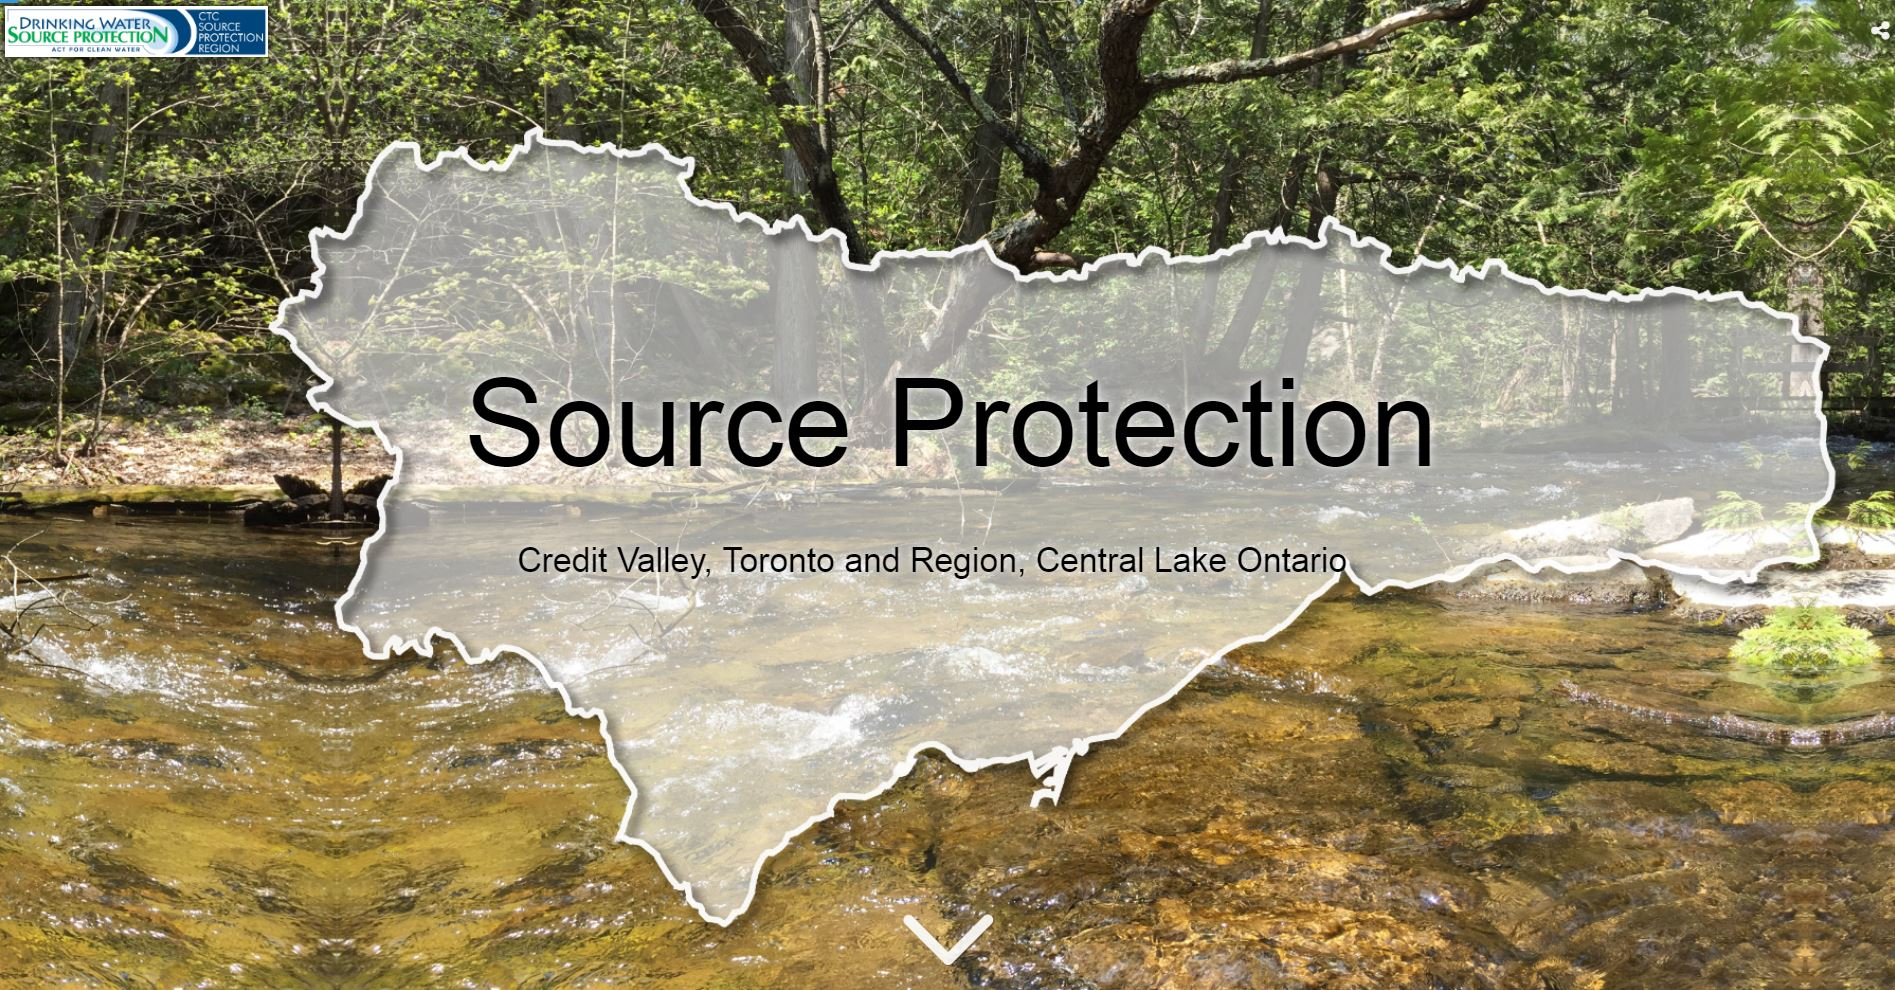 landing page of Source Protection story map